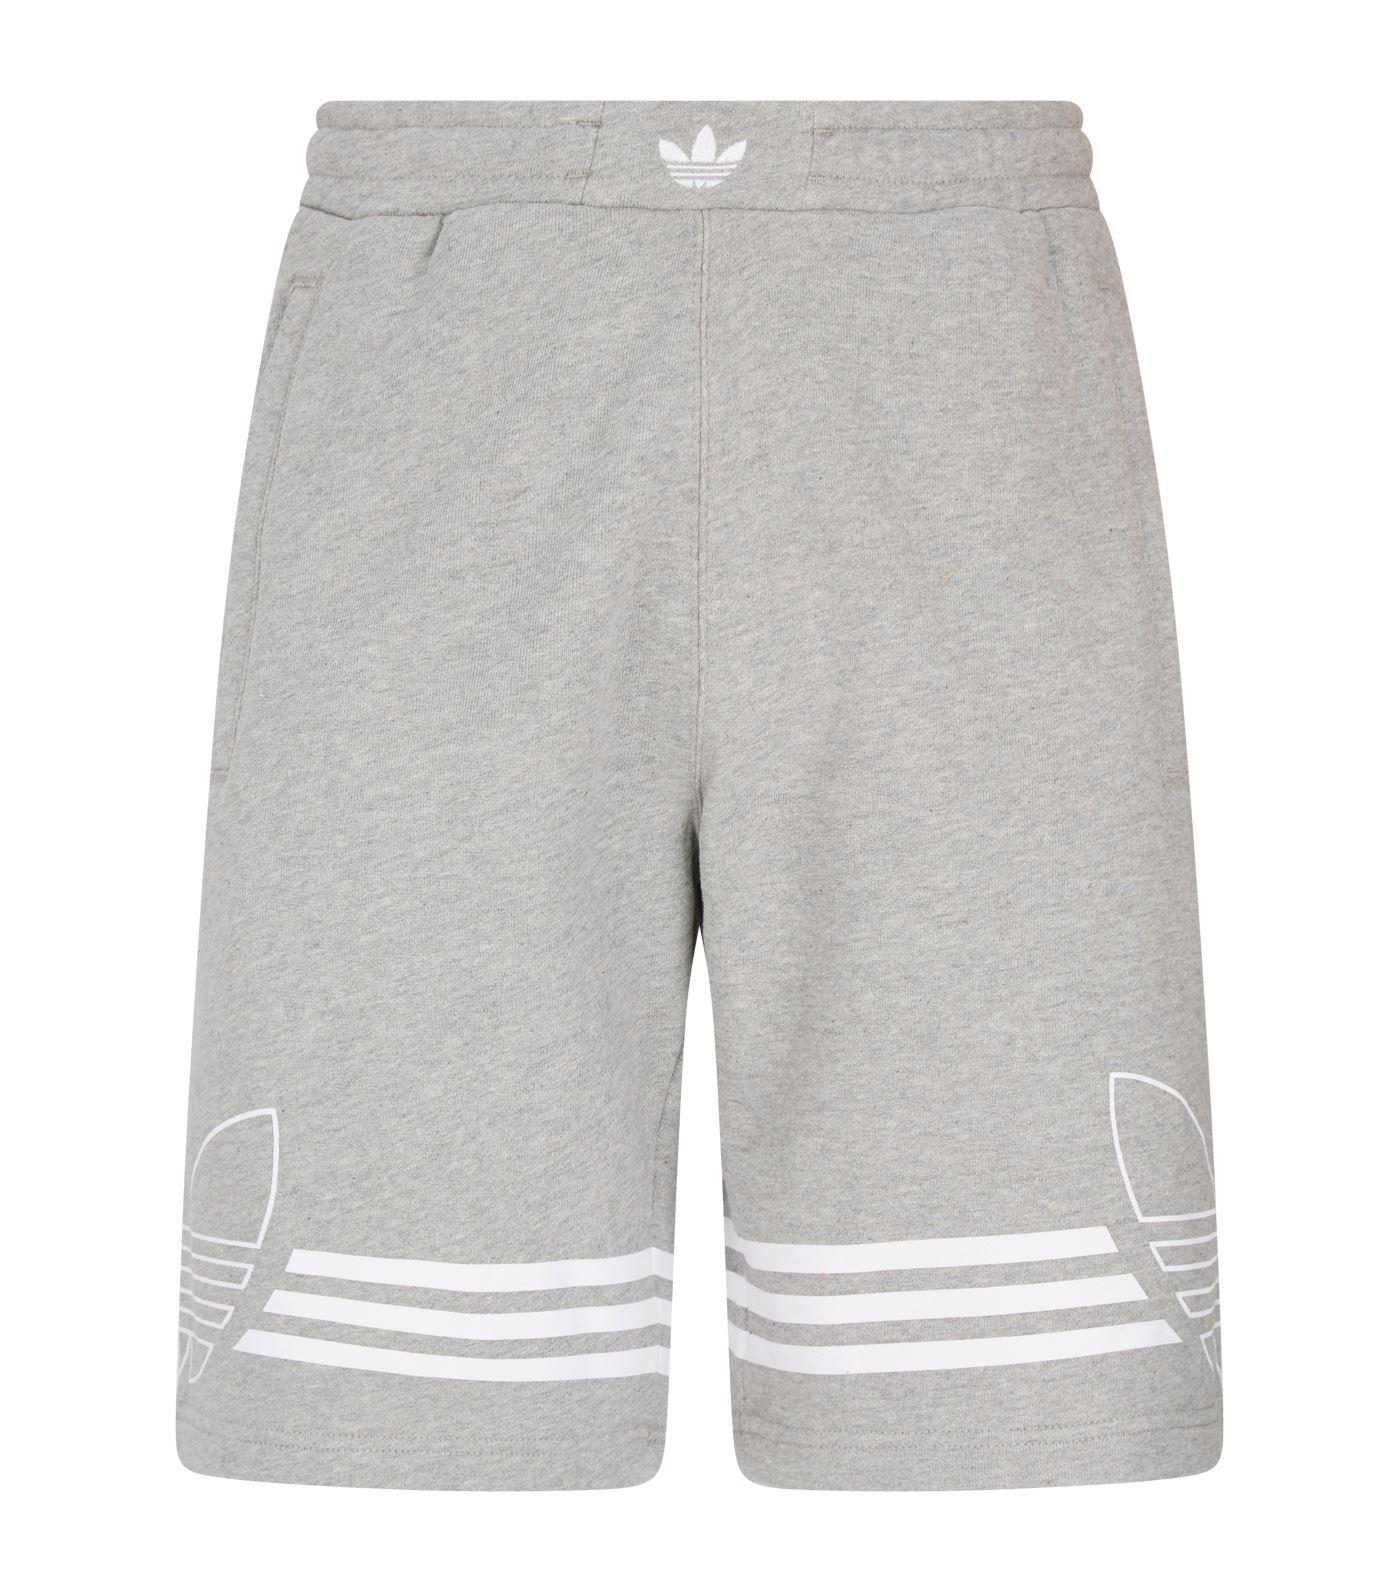 54474b2c8829 Lyst - adidas Originals Outline Sweat Shorts in Gray for Men